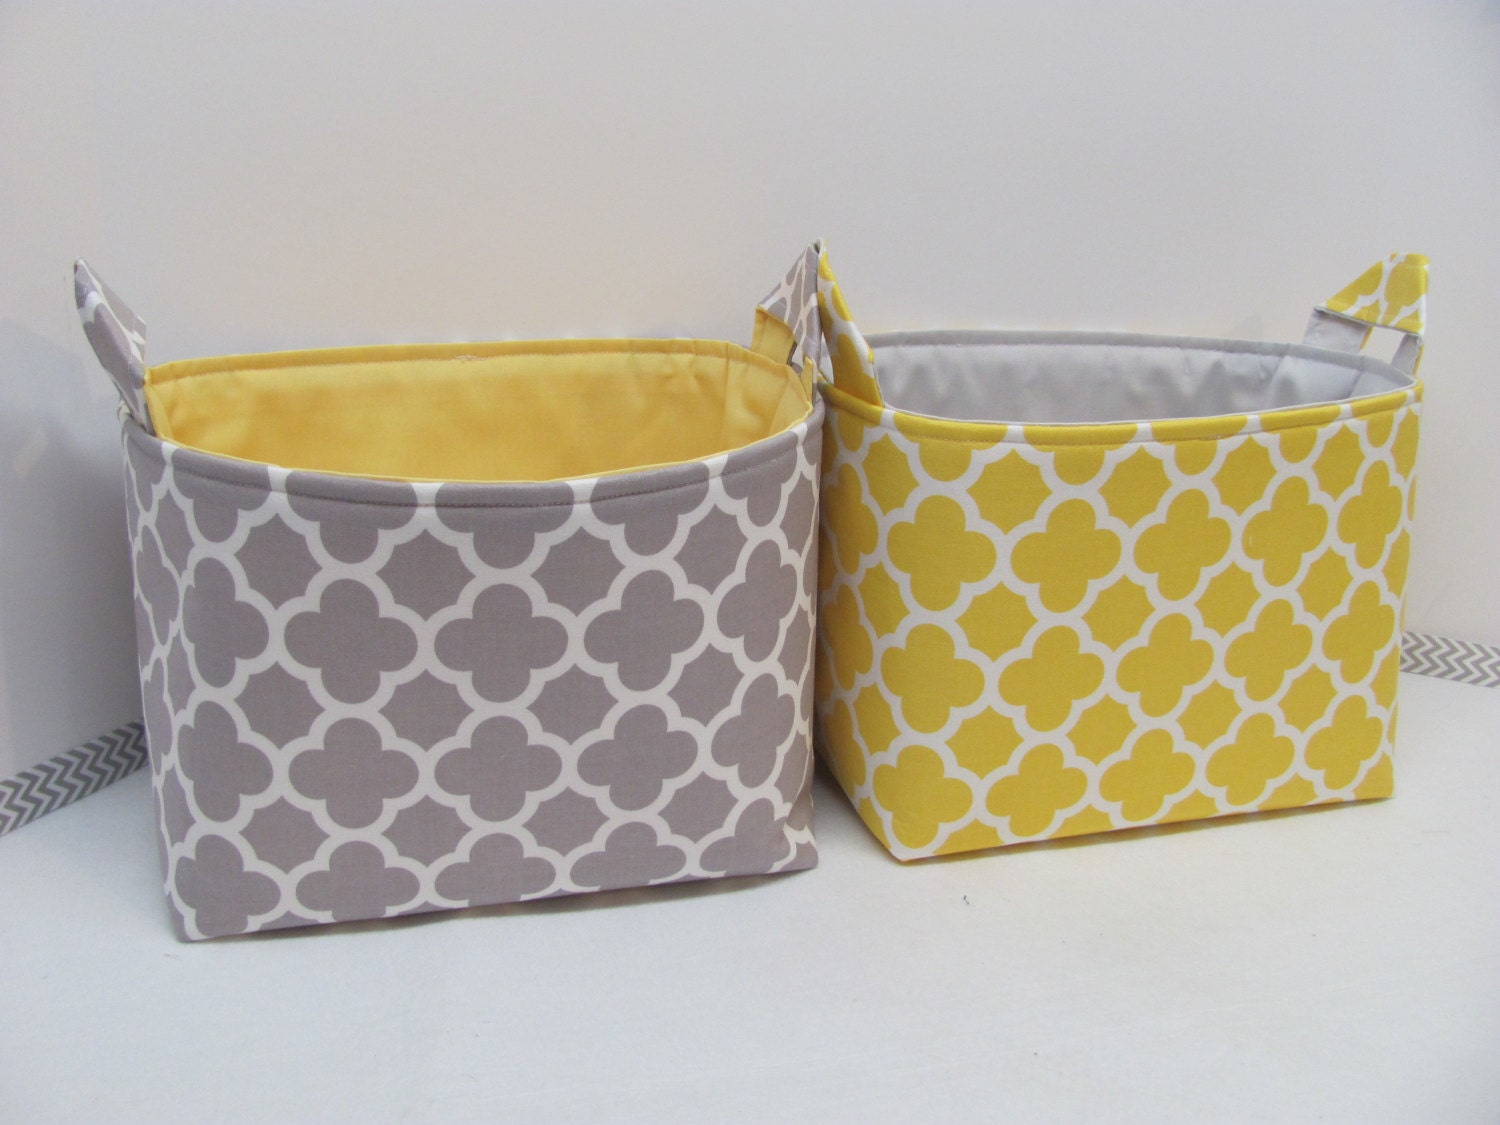 LARGE Fabric Organizer Baskets Storage by hipbabyboutique